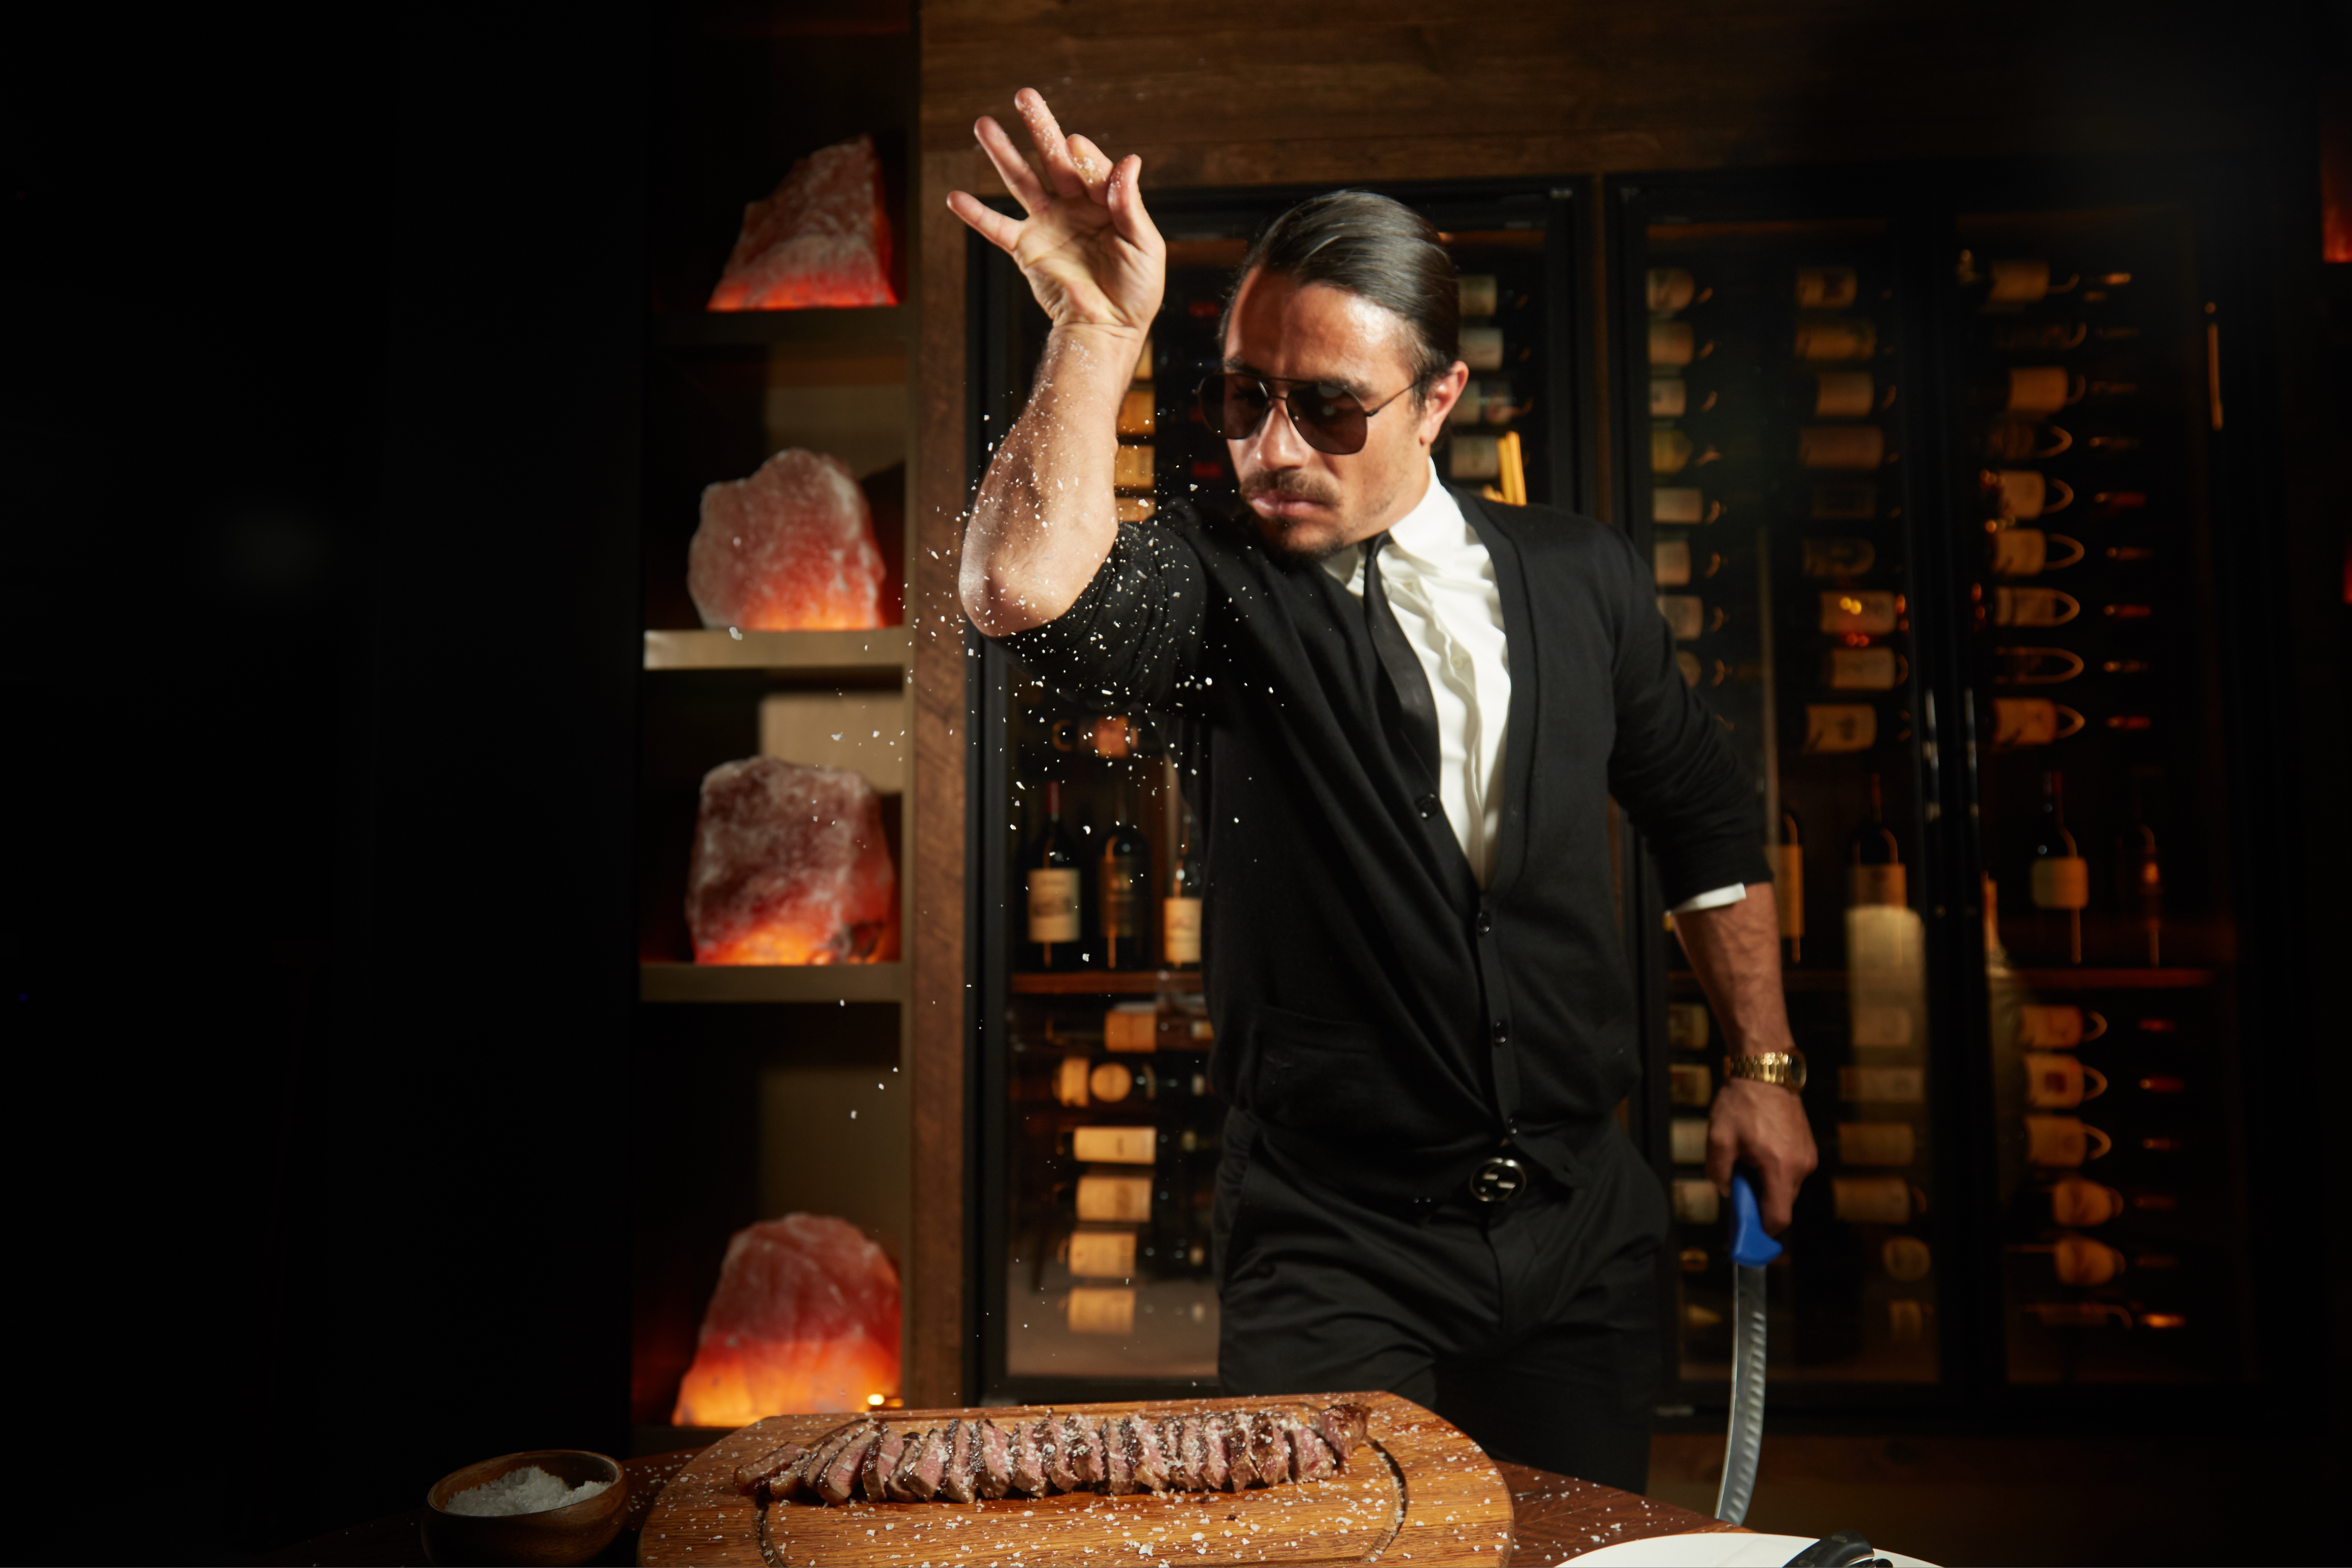 A man in dark sunglasses in a signature salt-sprinkling post stands over a cutting board with sliced steak.